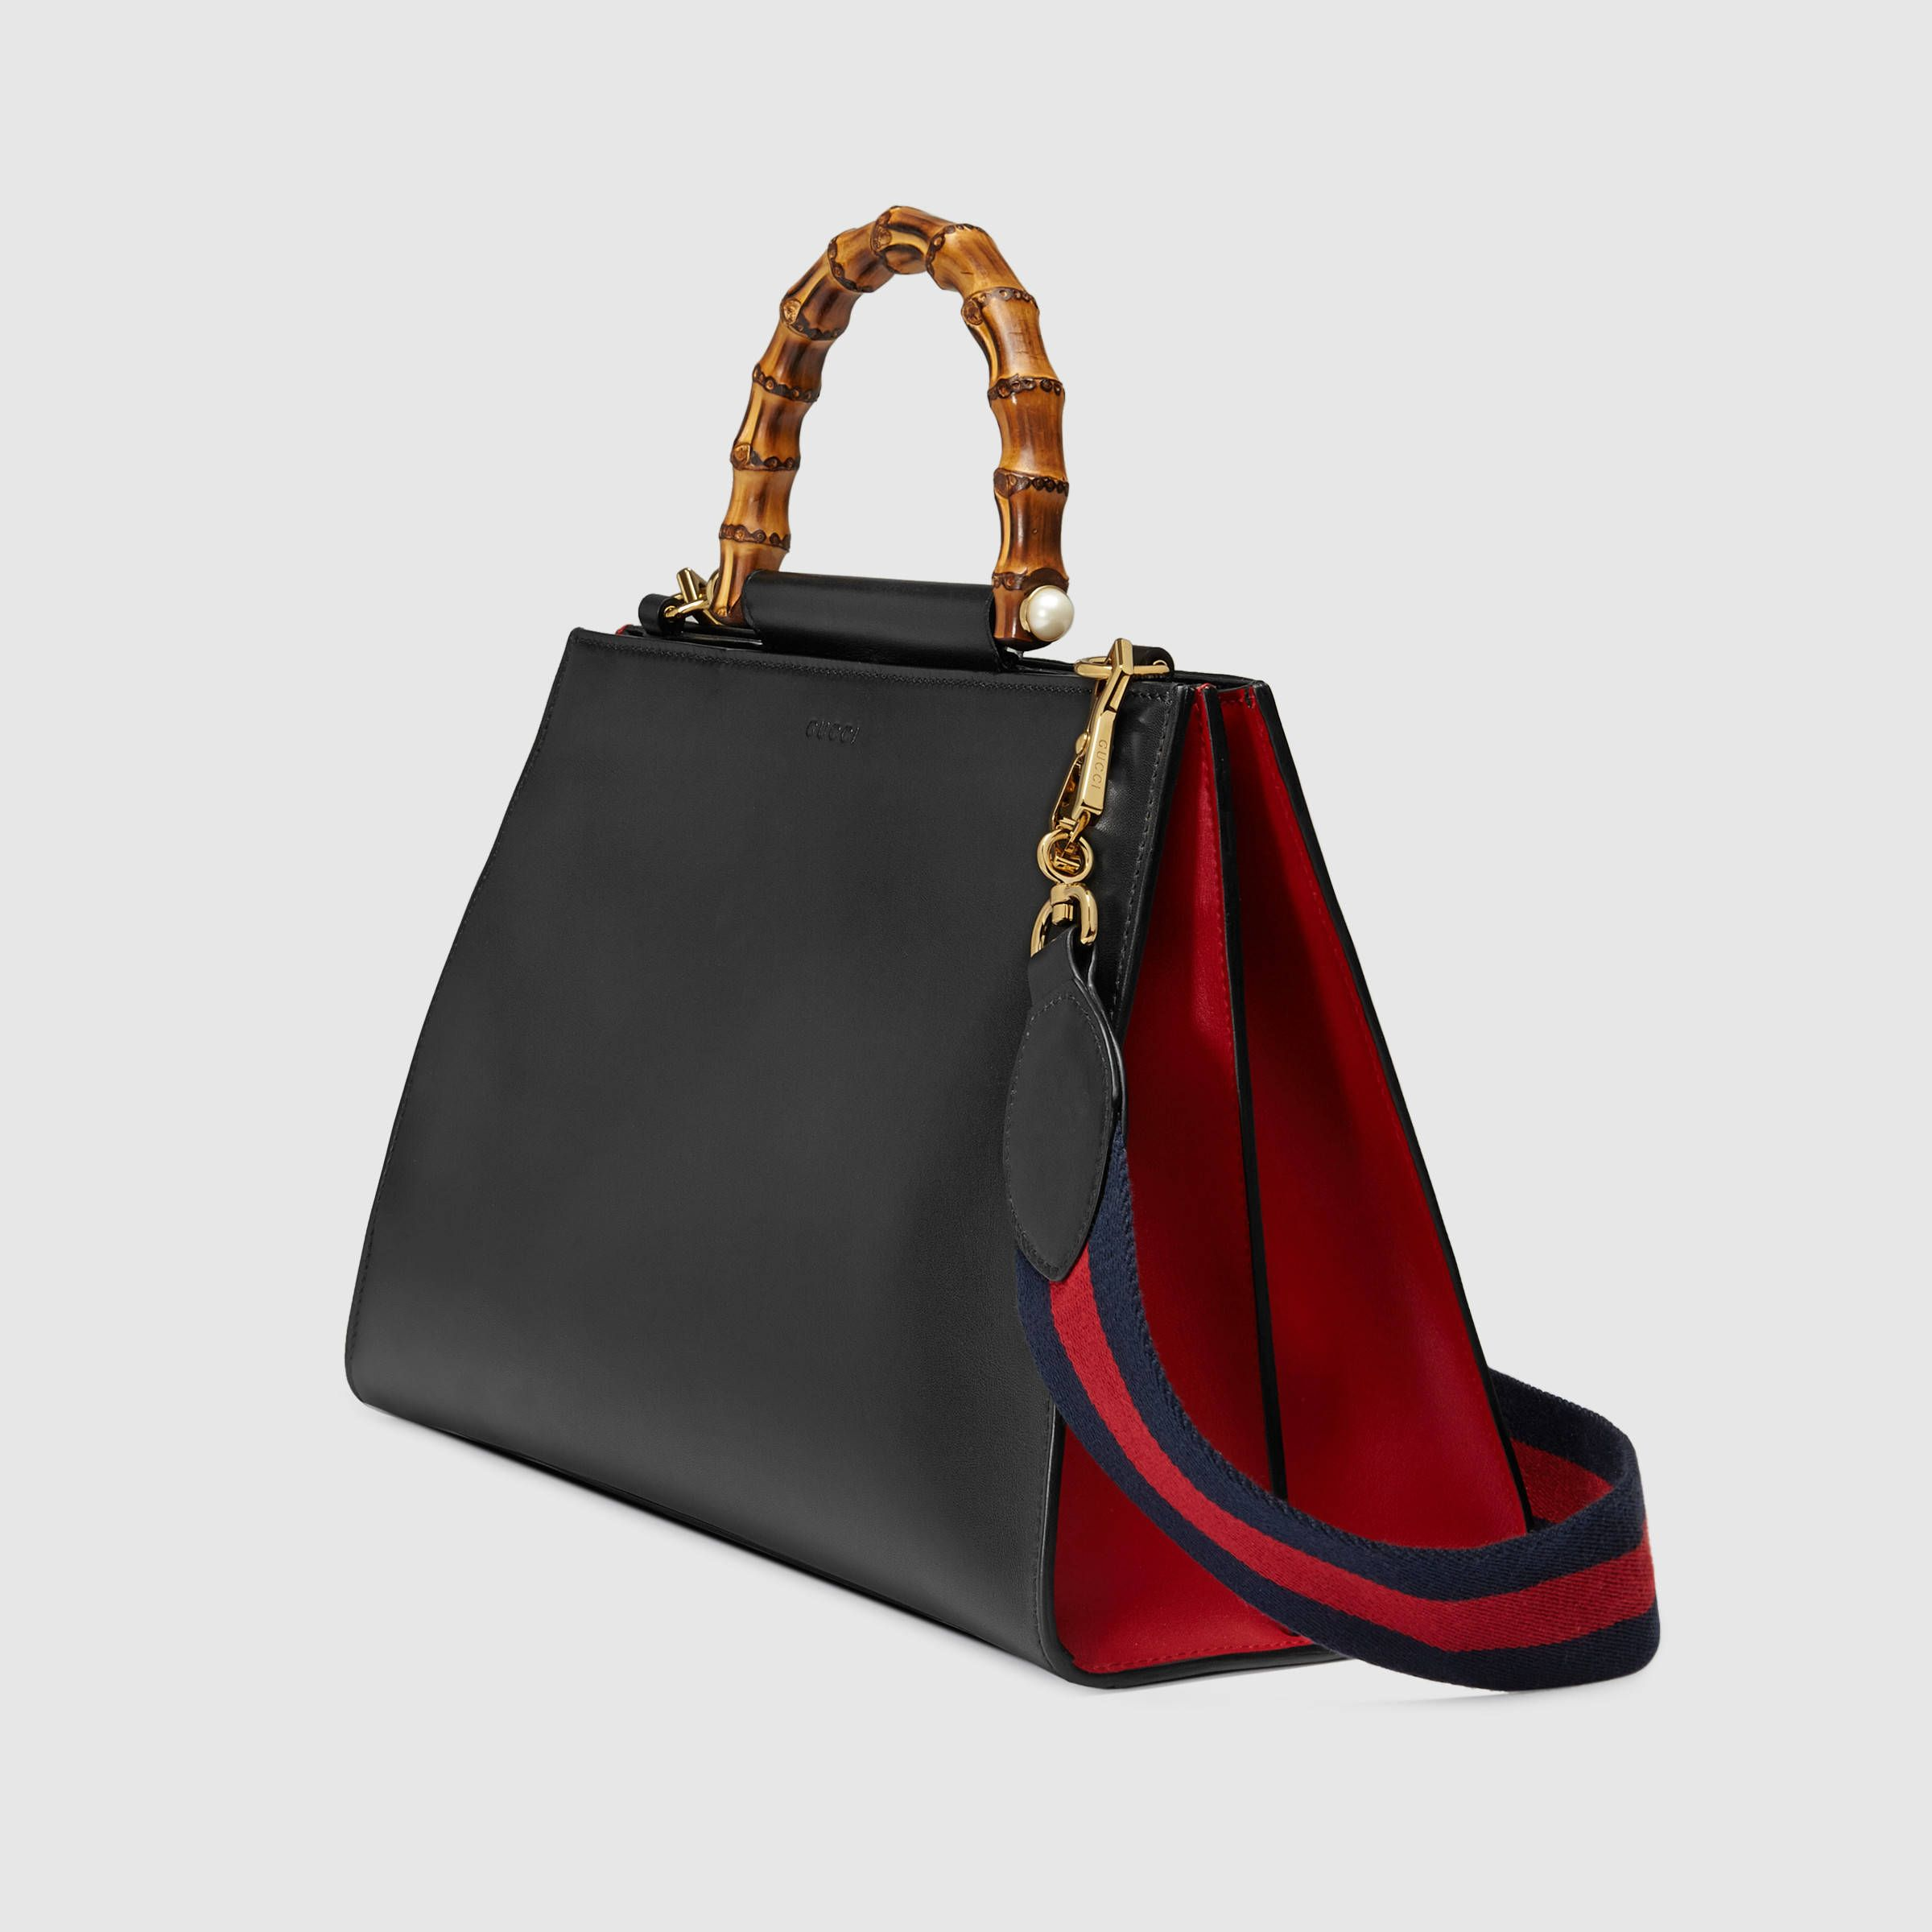 Gucci Nymphaea leather top handle bag $ 2,690 2 compartments, 2 zips Medium  size: